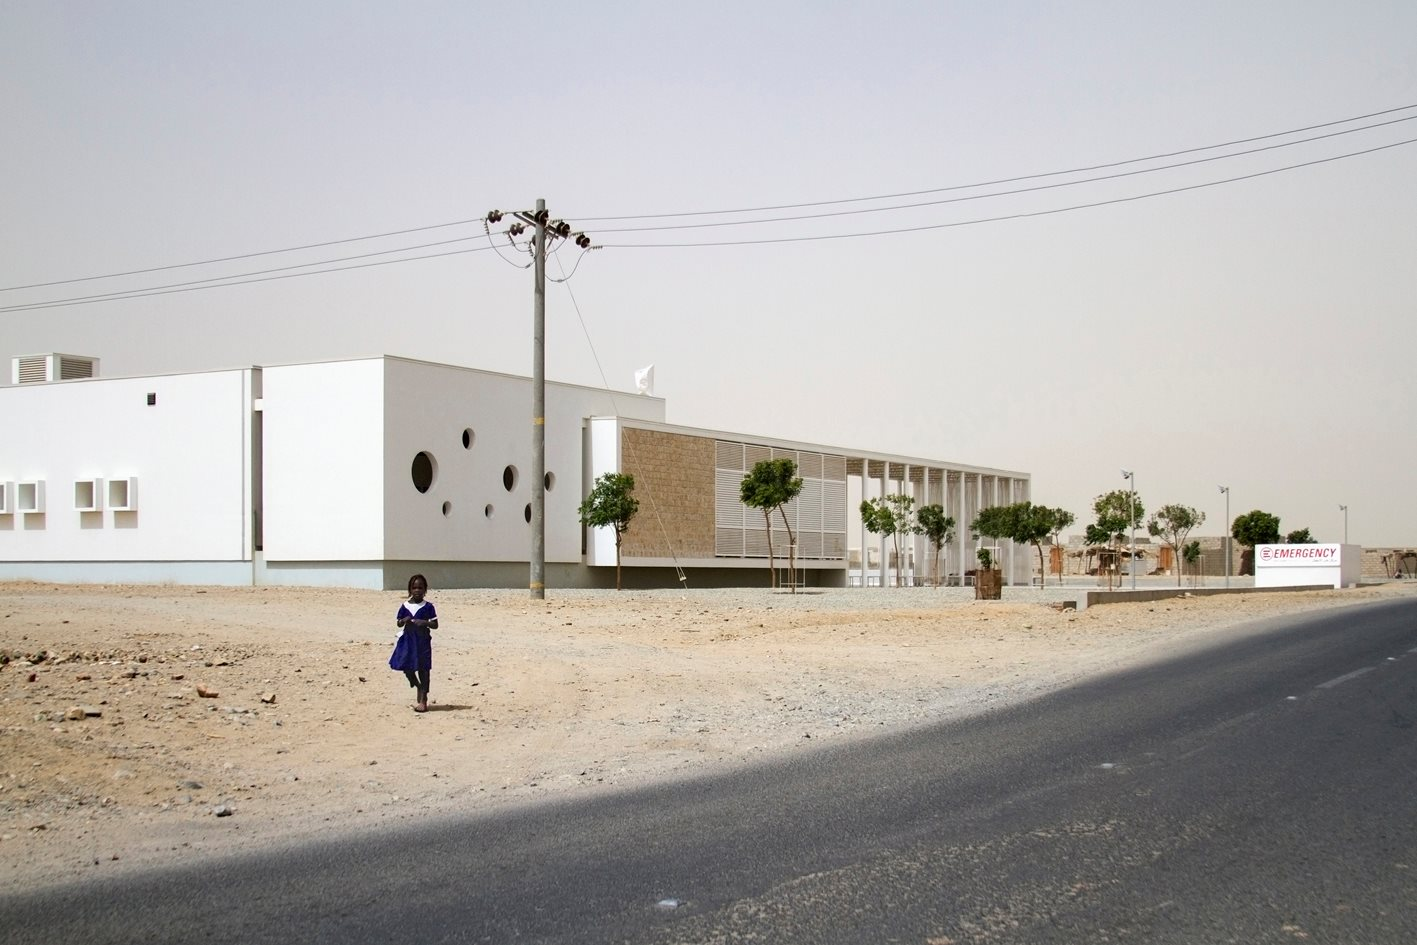 EMERGENCY's Port Sudan Paediatric Centre Awarded The Zumbotel Group Award In London